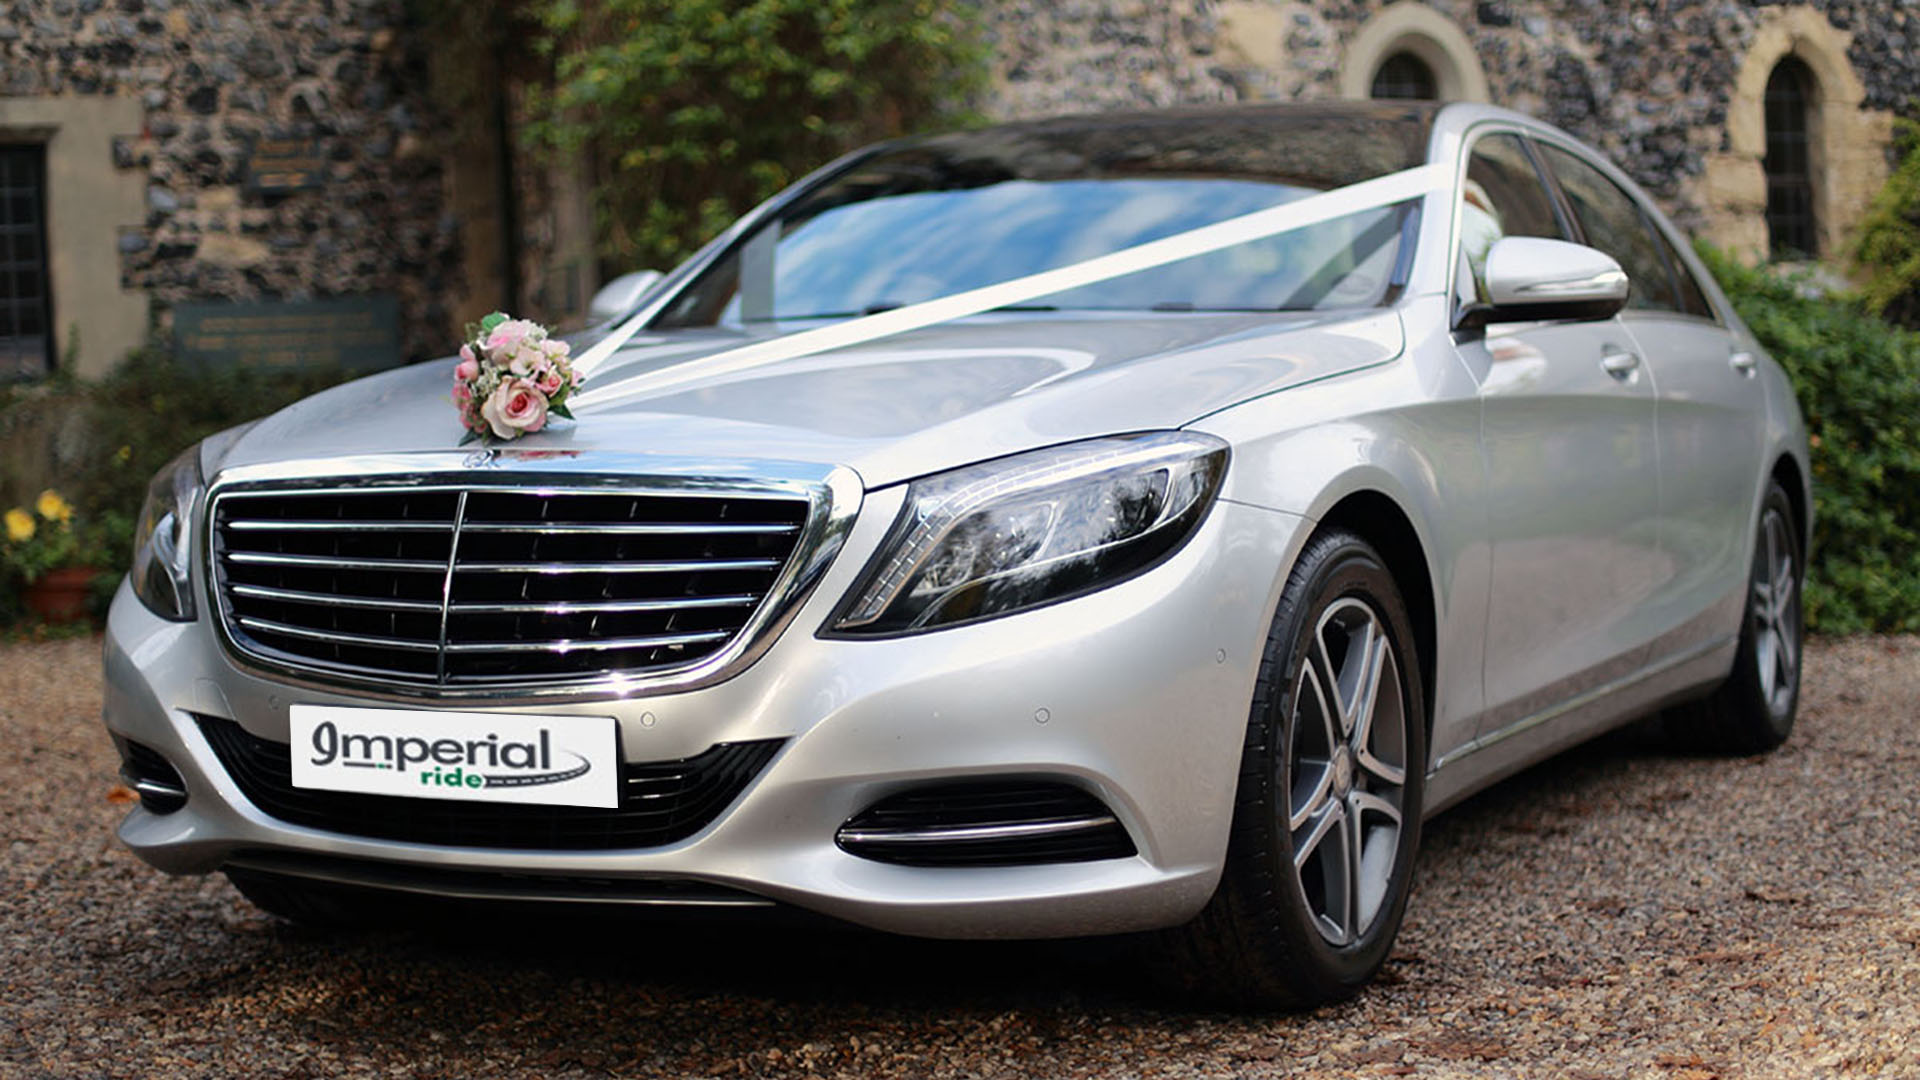 s-class-wedding-hire-in-southwark